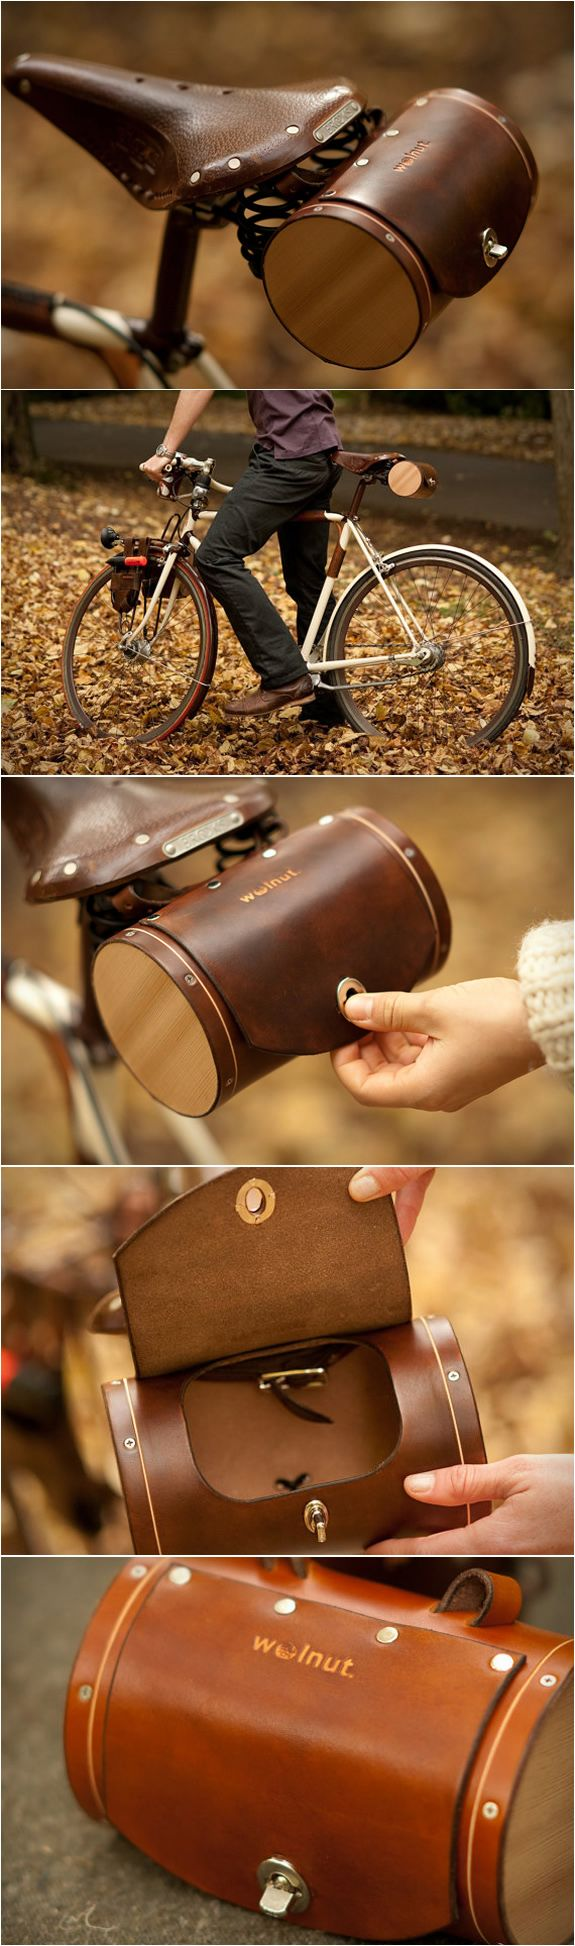 Bicycle Saddle Bag - honestly, if I actually had all of the bike accessories that I wish I had, I wouldn't be able to move, because it would all be to heavy.